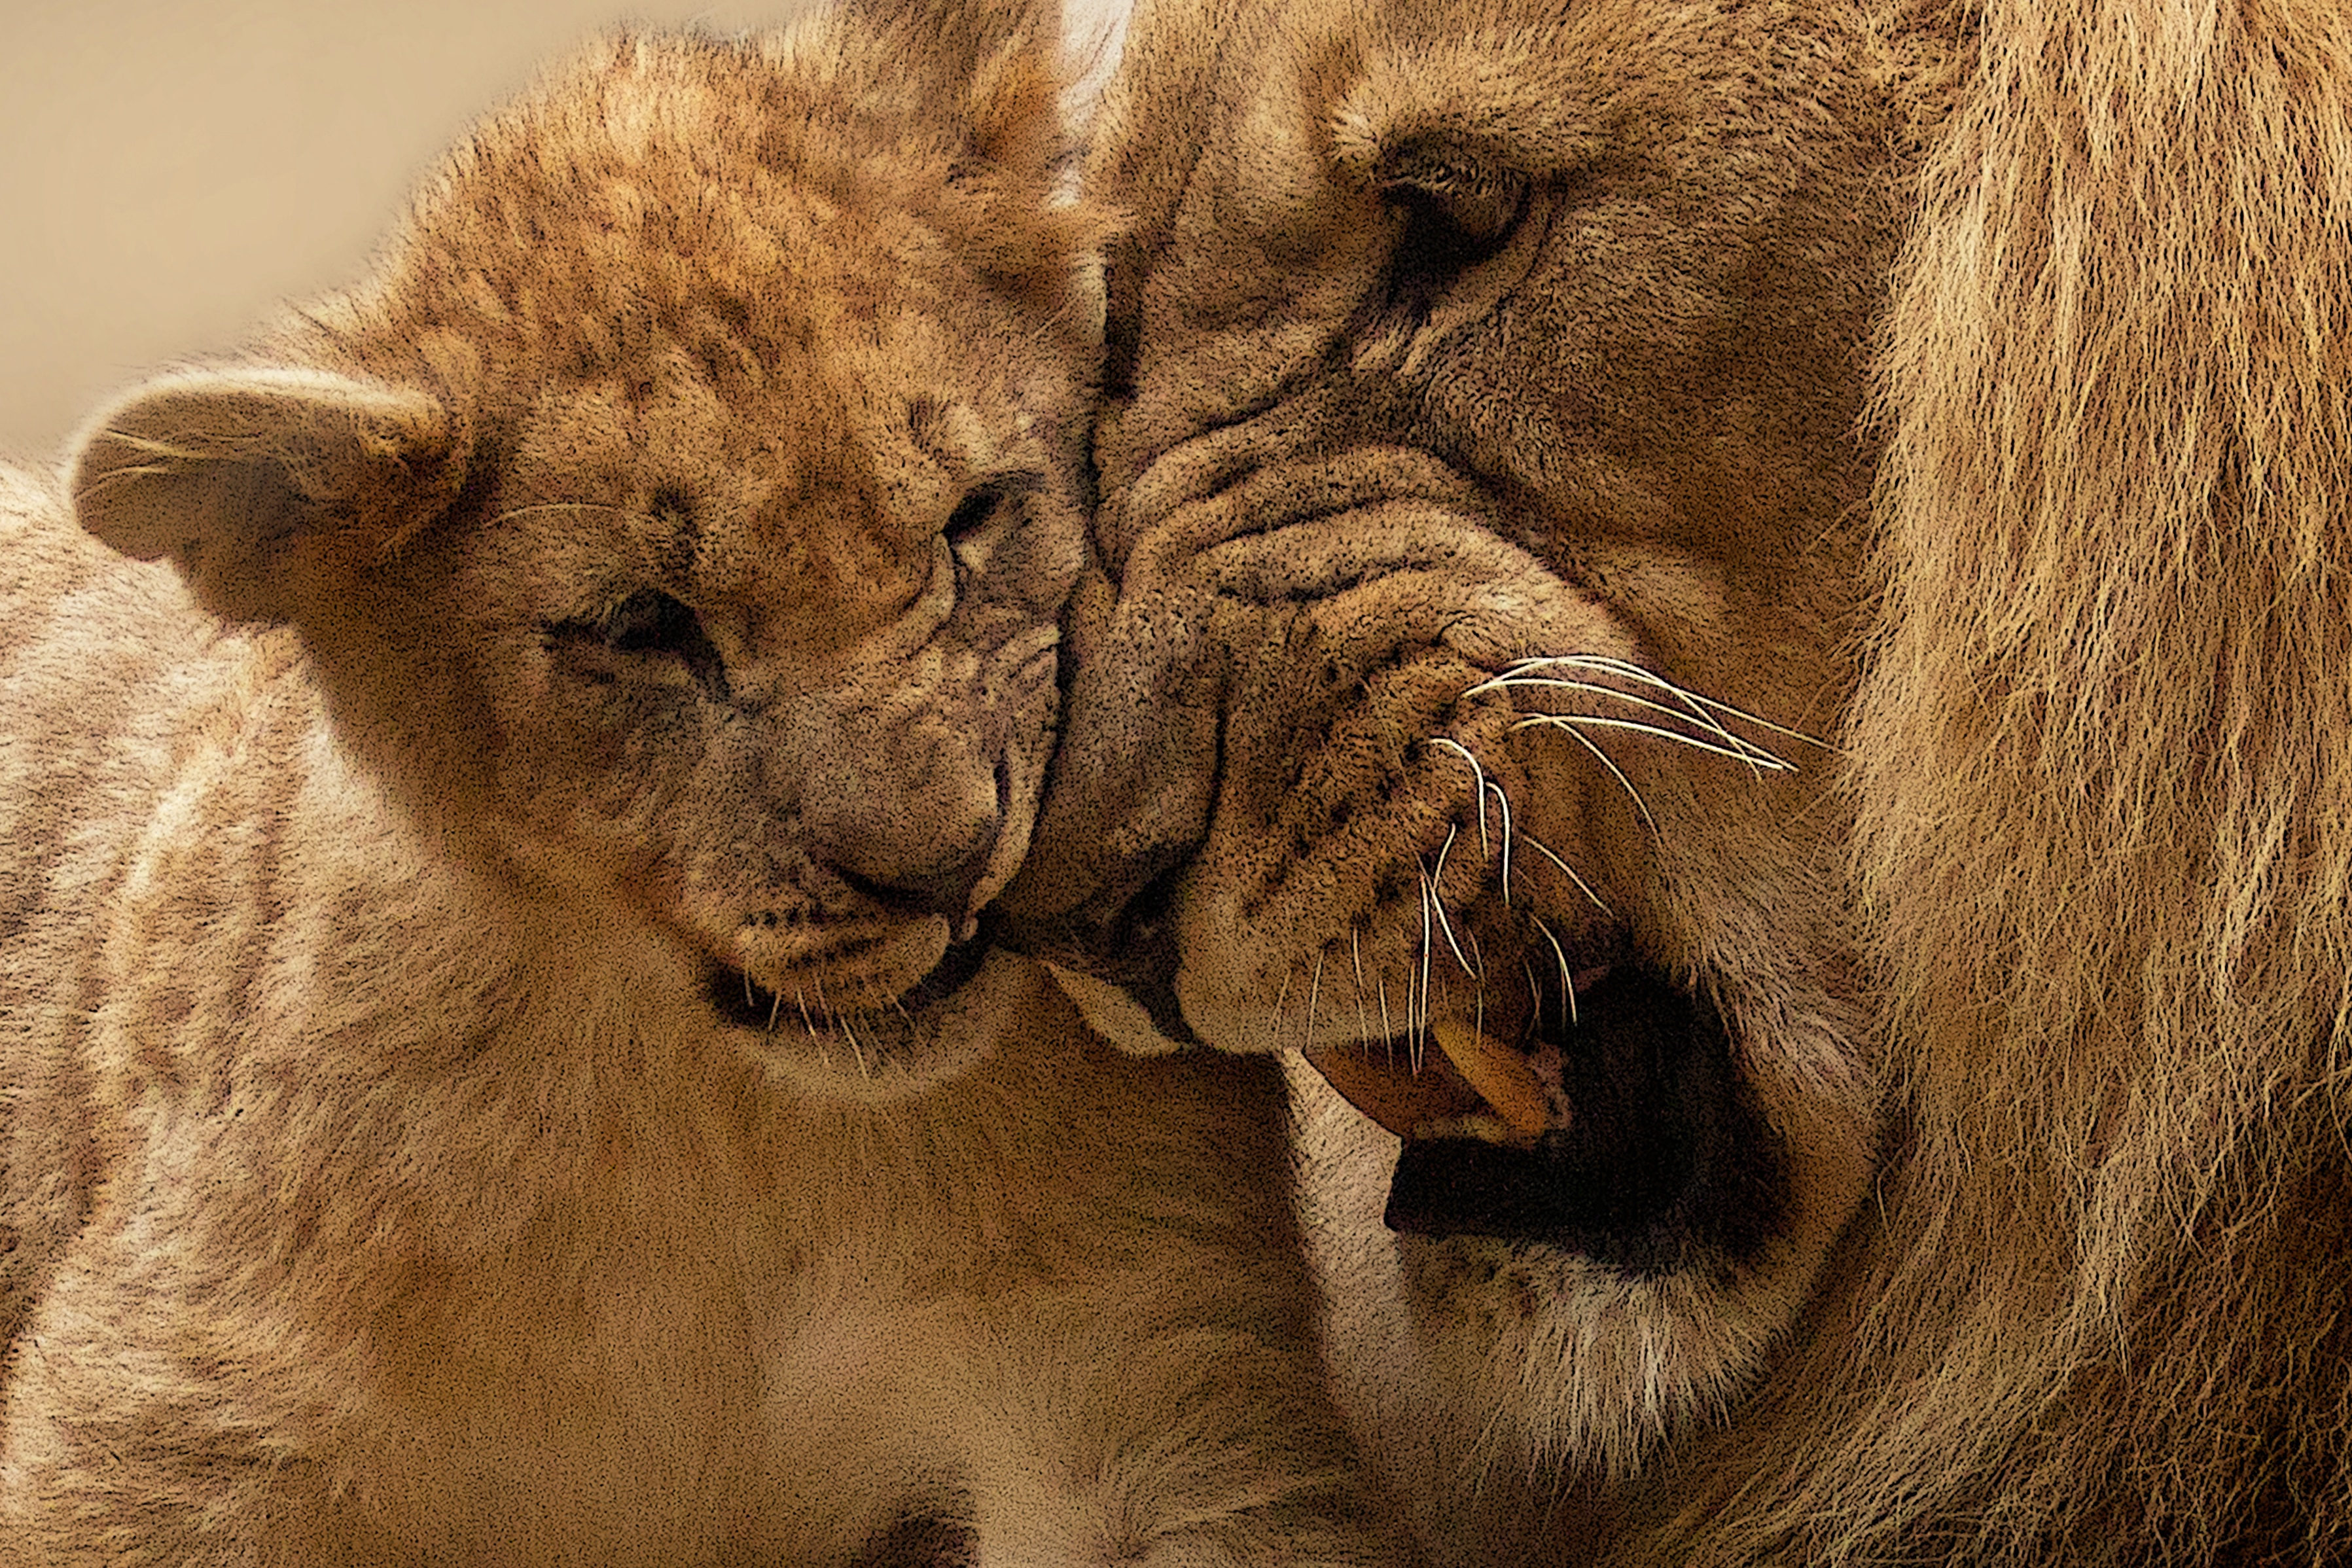 Download Cute Wallpapers For Facebook Close Up Portrait Of Lion 183 Free Stock Photo